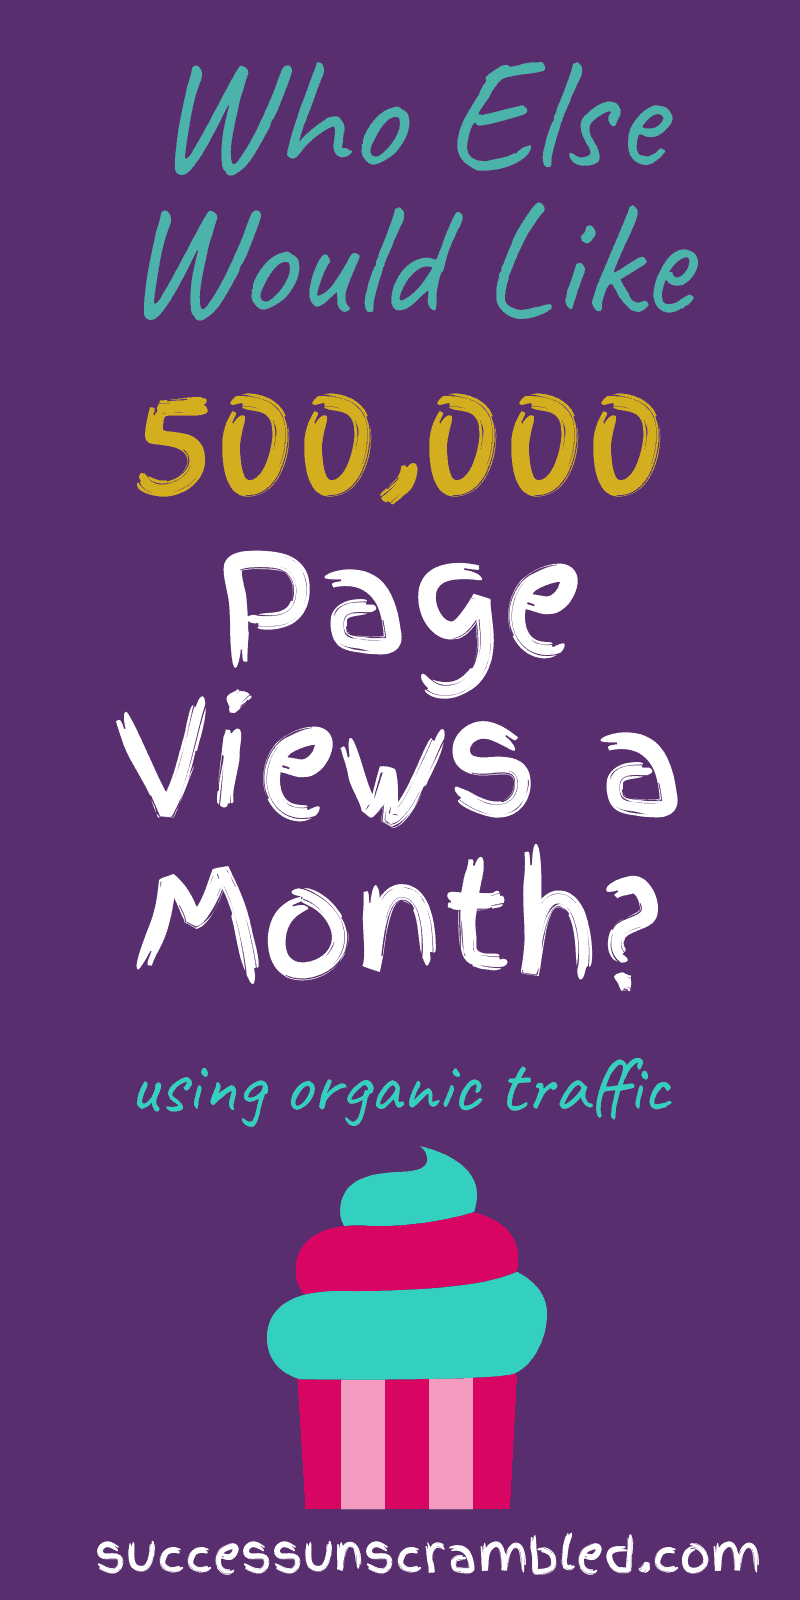 who else wants 500,000 page views of organic traffic - 800x1600